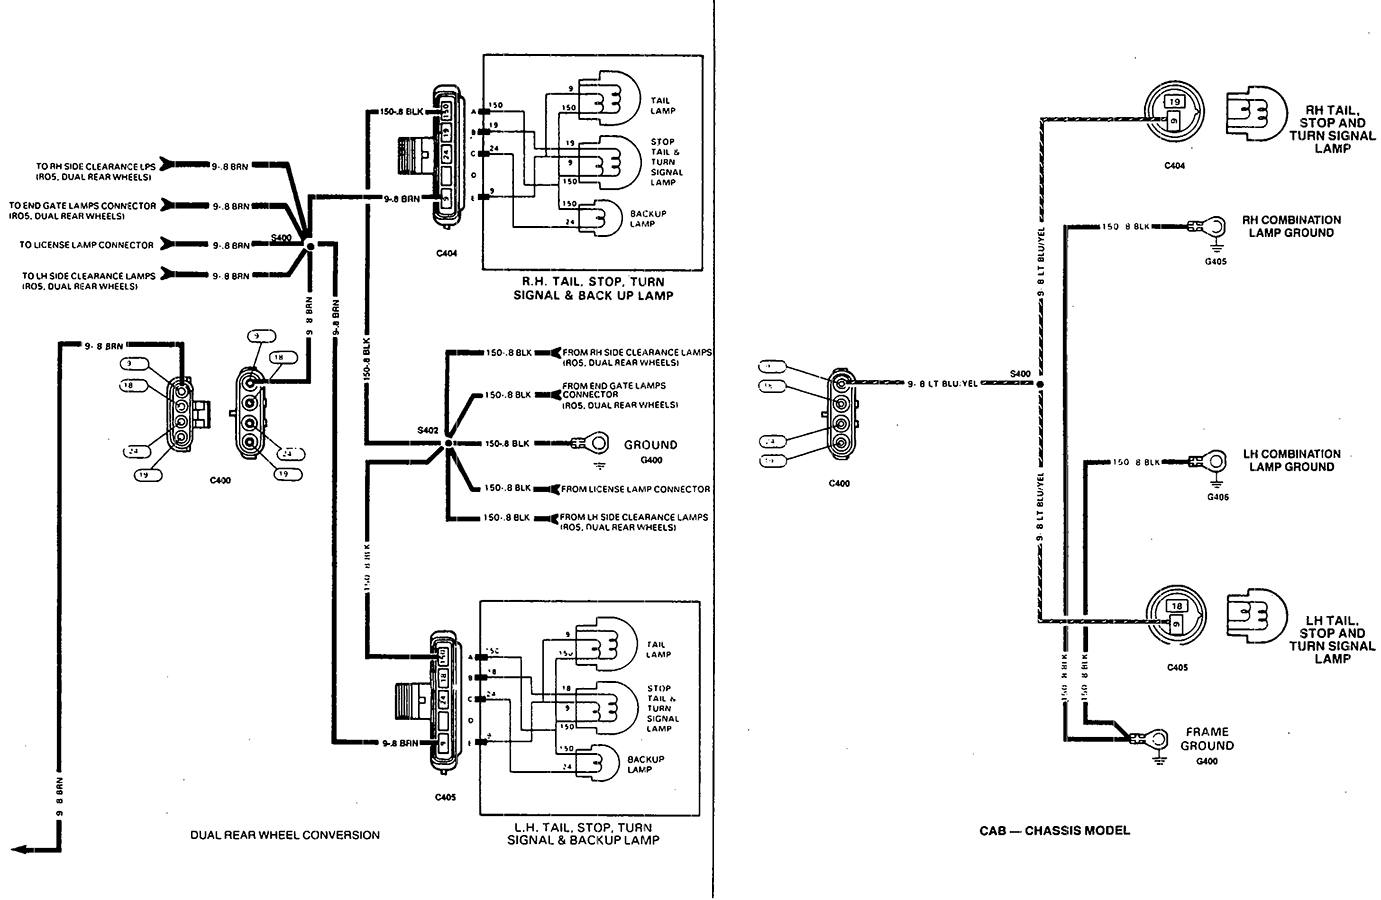 1997 Chevy Tail Light Wiring Diagram | Manual E-Books - Tail Light Wiring Diagram